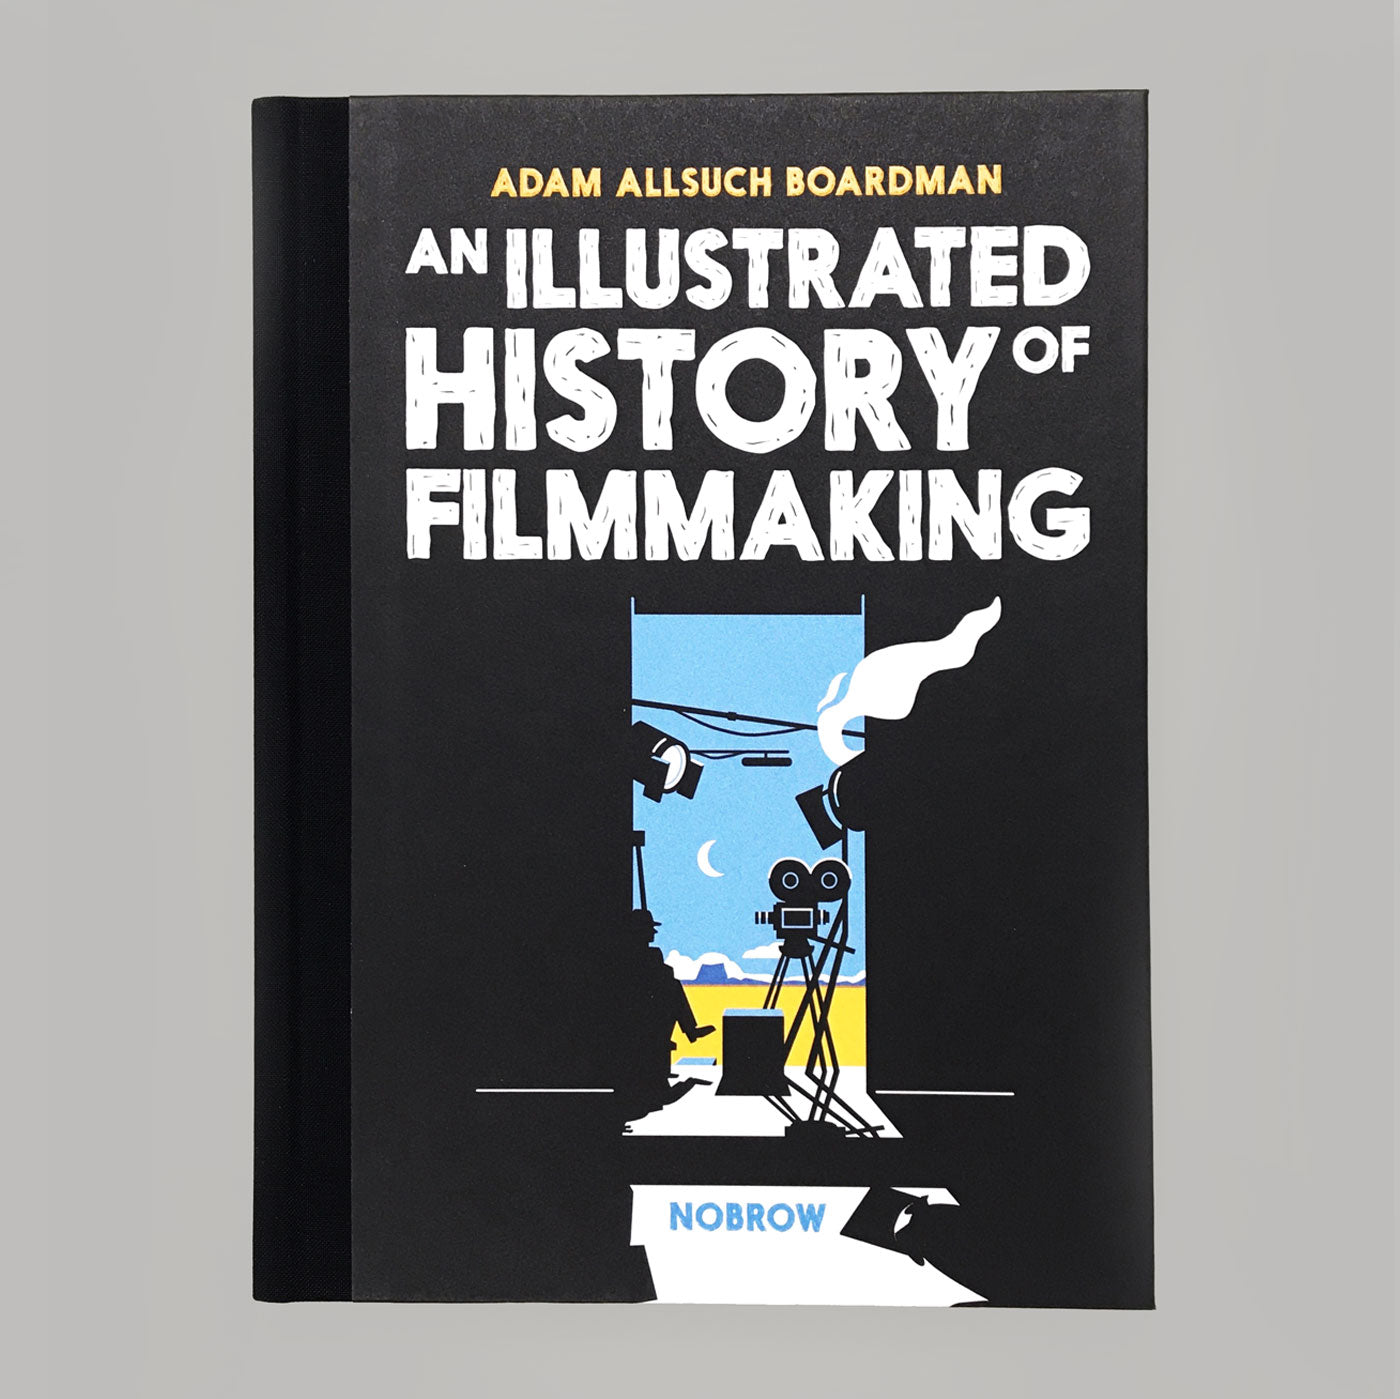 An Illustrated History of Filmmaking by Adam Allsuch Boardman - NoBrow